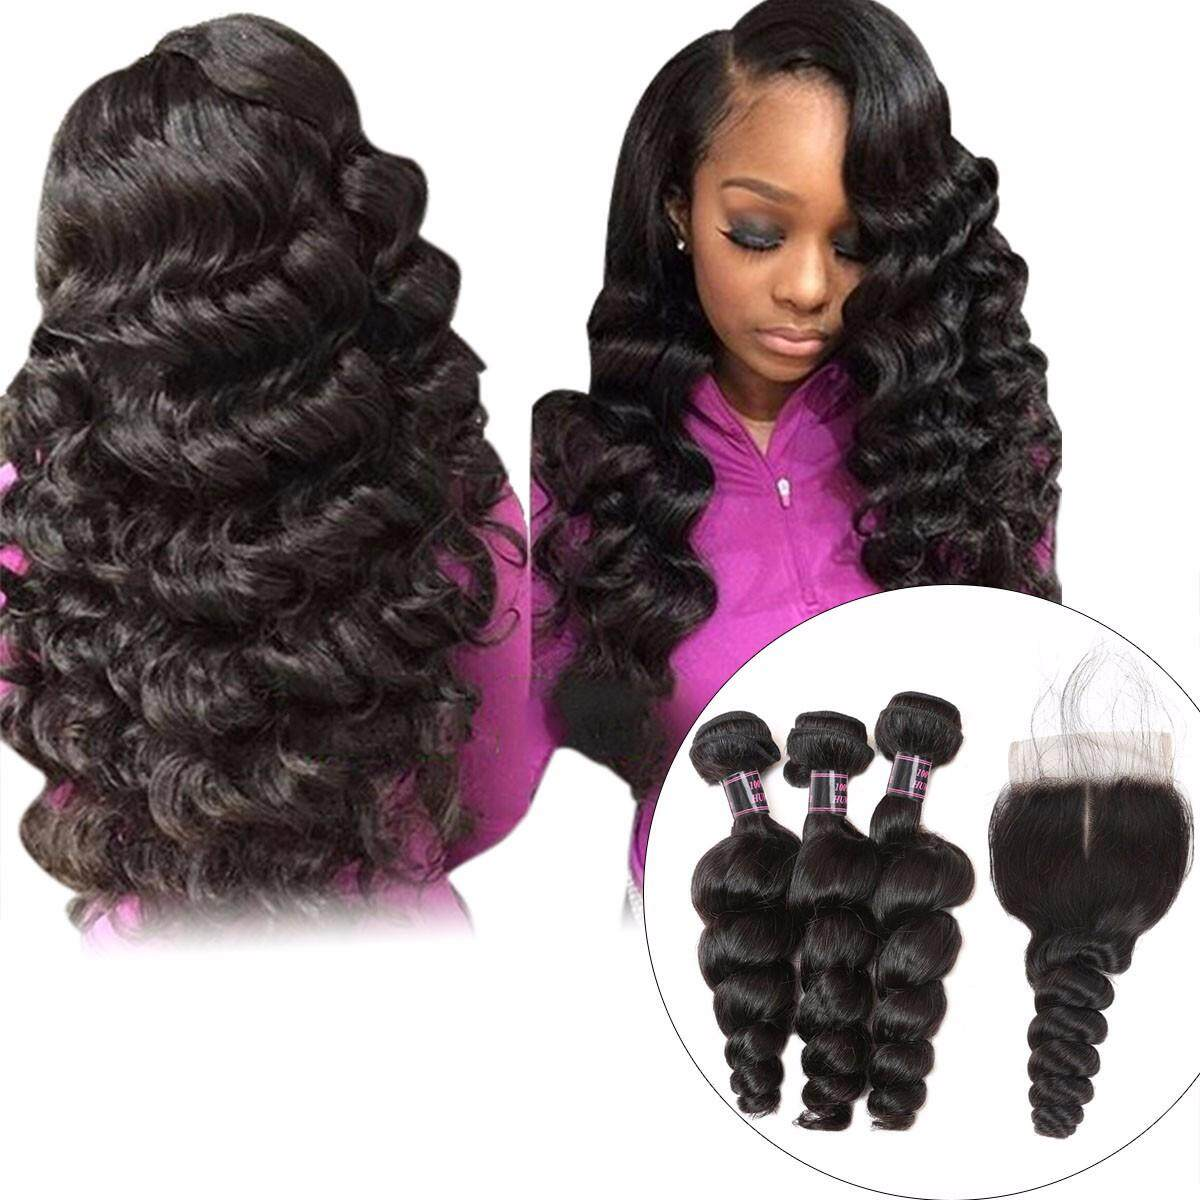 Can You Straighten A Curly Synthetic Wig The Wig Galleries